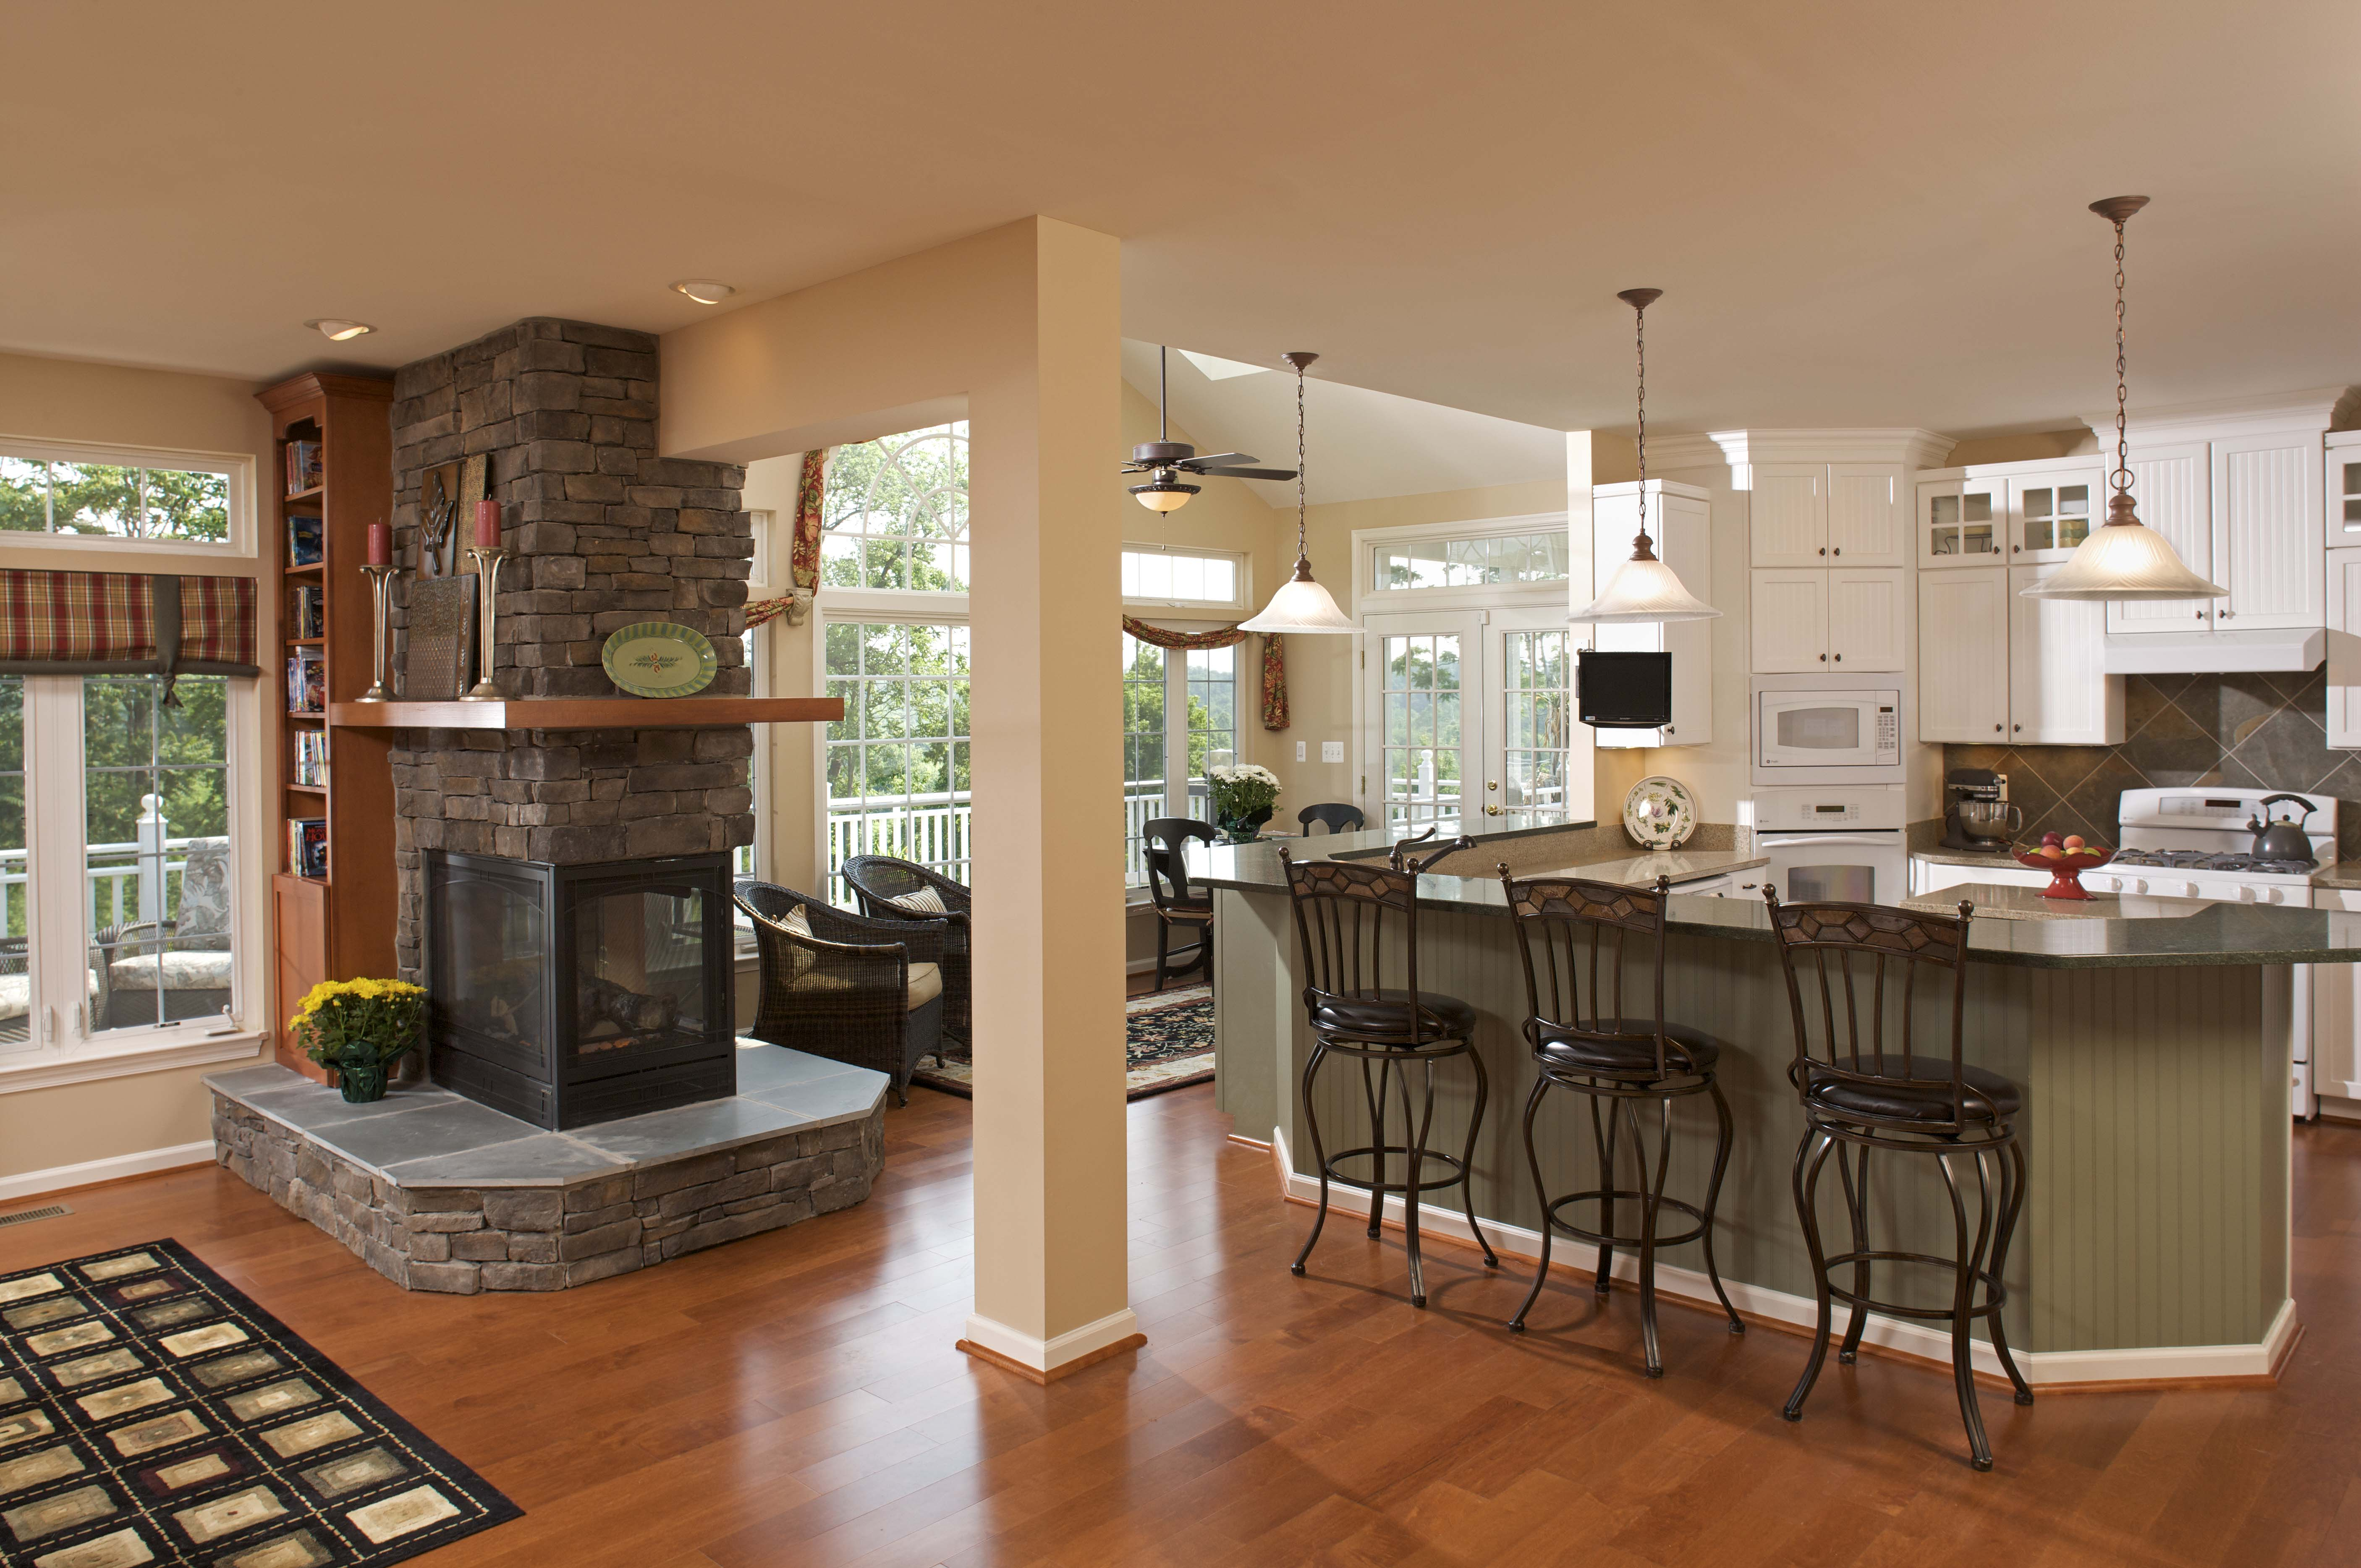 Home remodeling tips and ideas for DIY enthusiasts THWUJOH